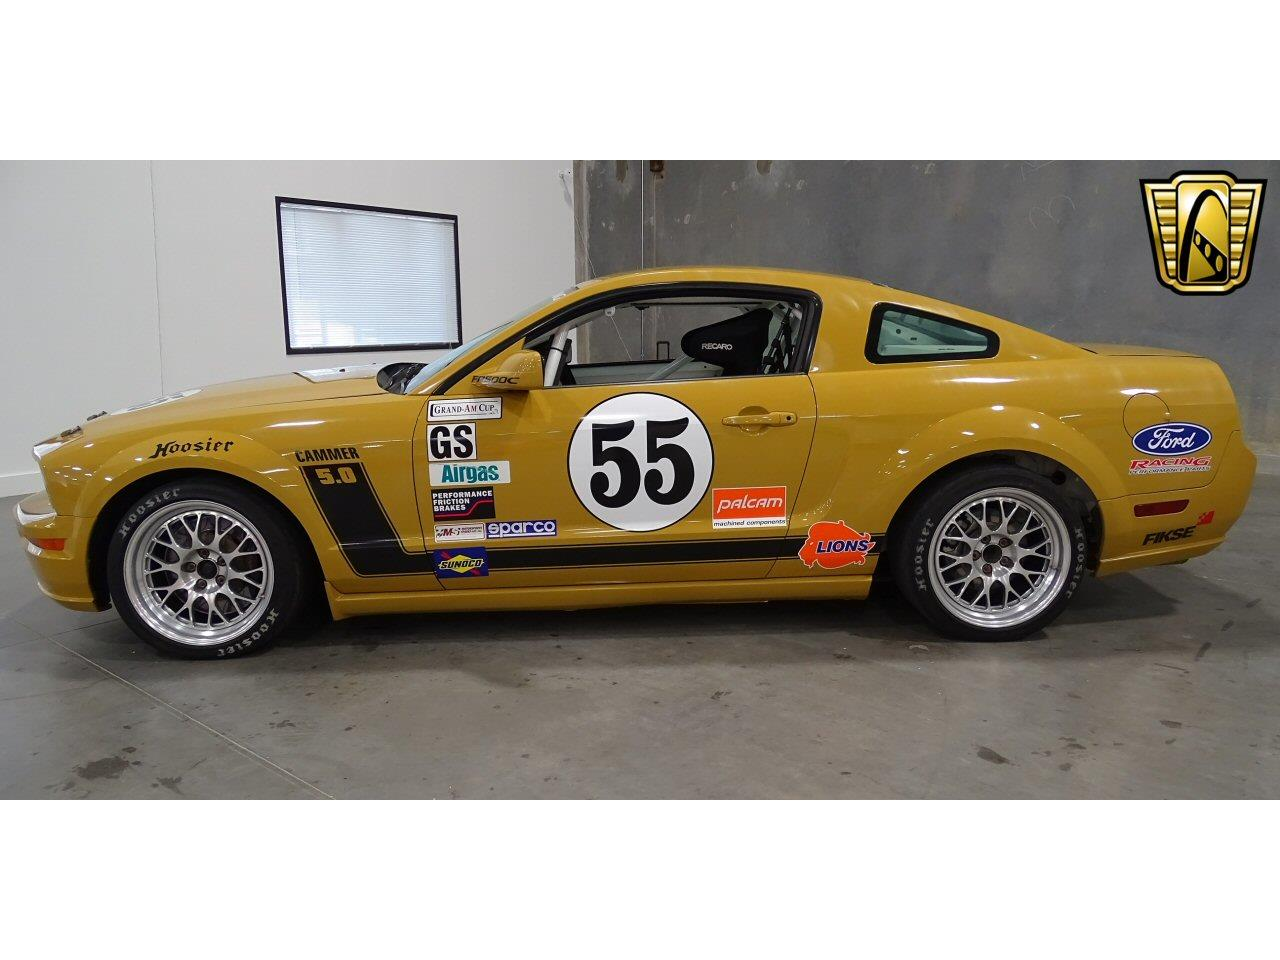 Large Picture of 2005 Ford Mustang located in Texas - $260,000.00 Offered by Gateway Classic Cars - Dallas - KES0